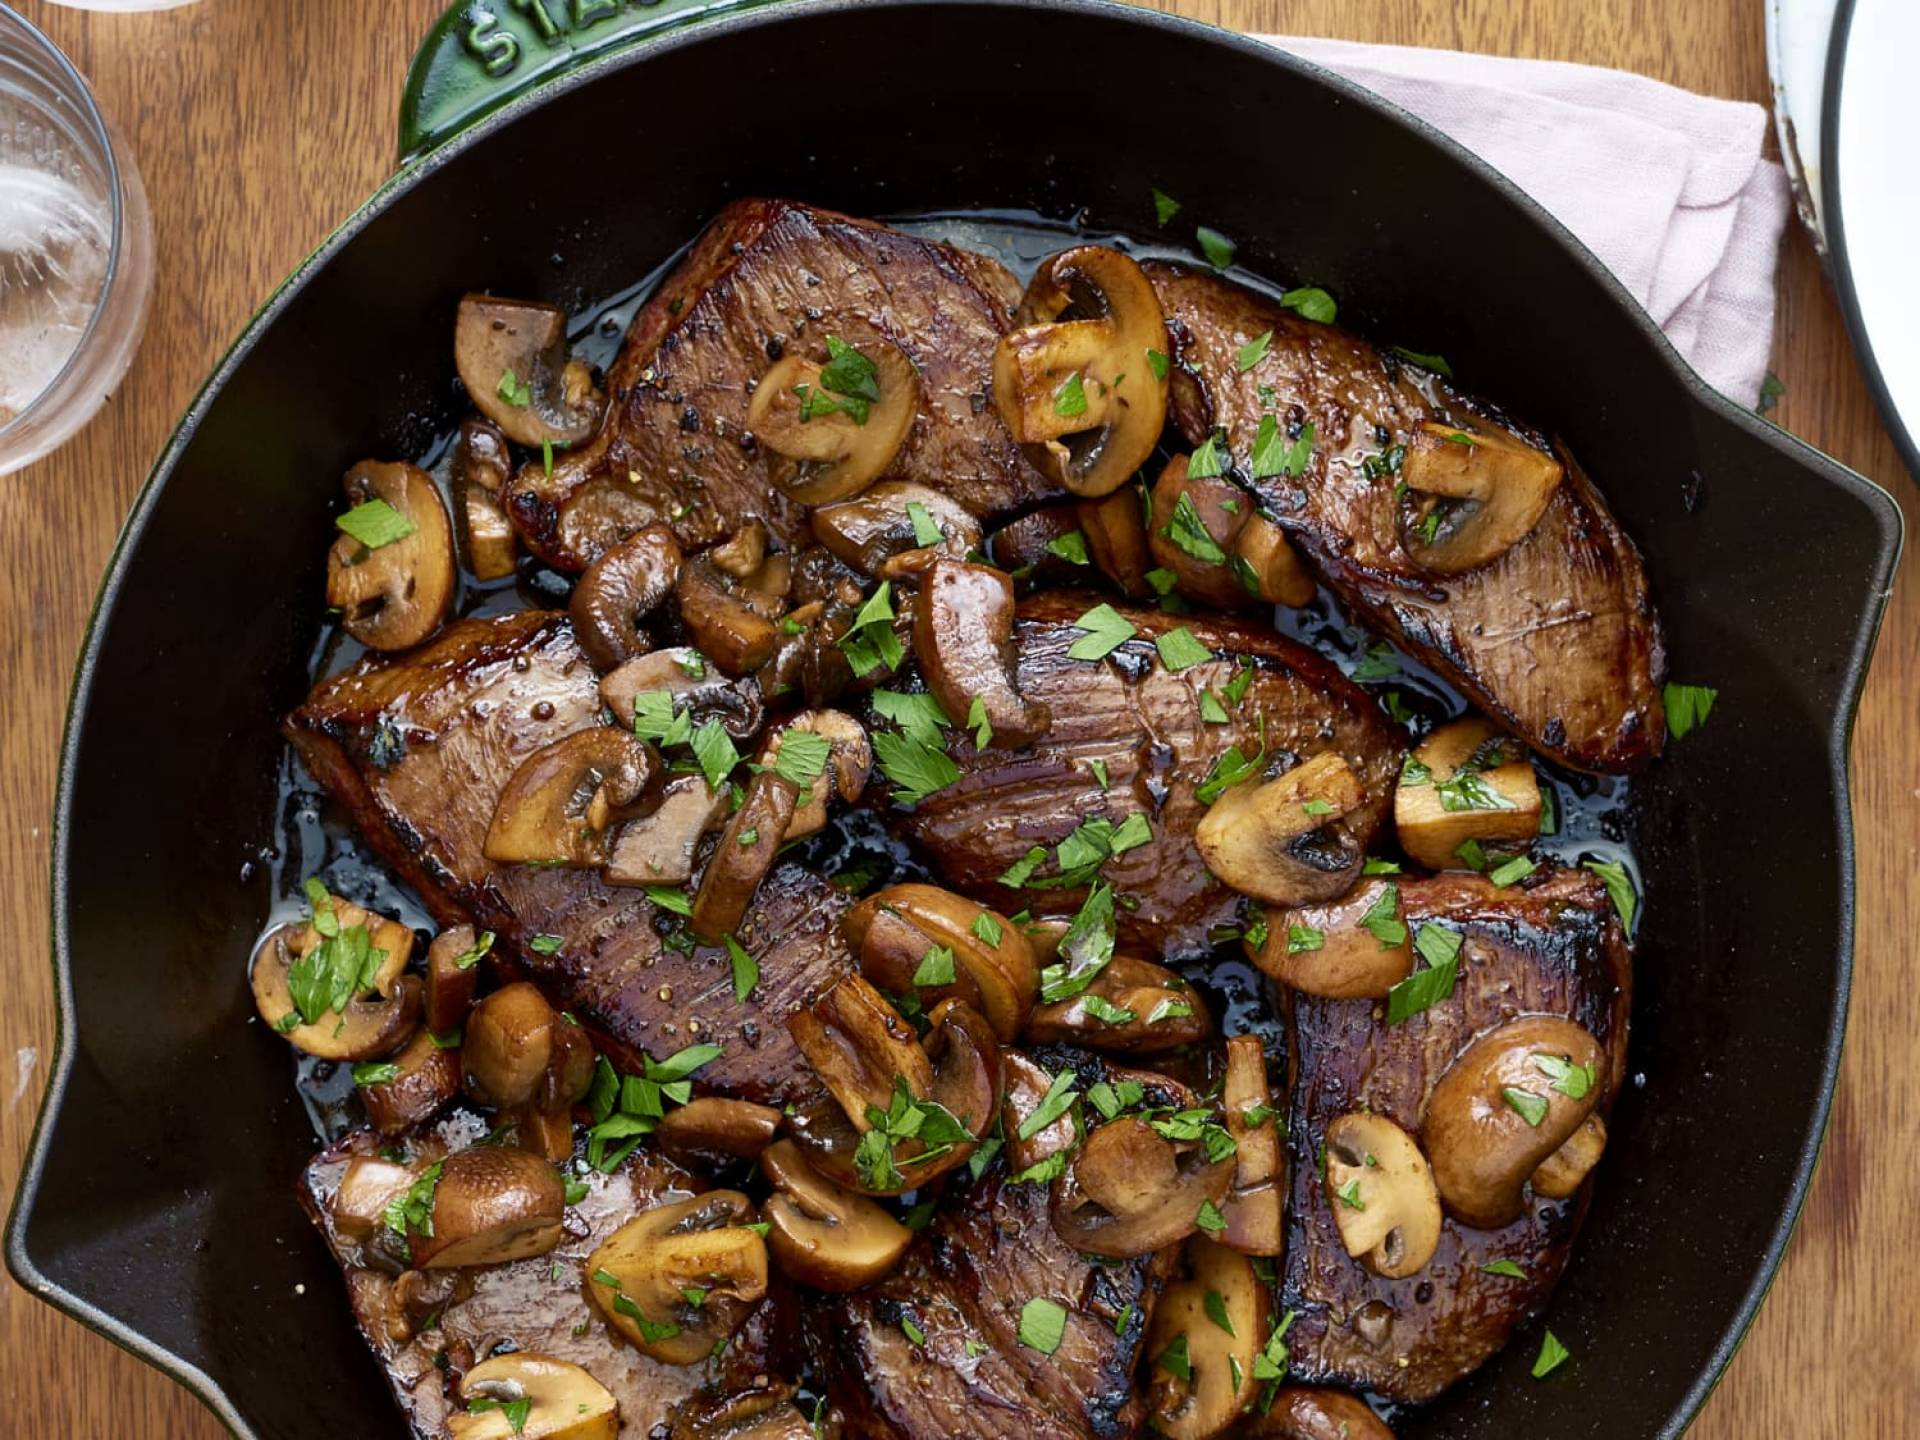 Steak with Fried Onions and Mushrooms